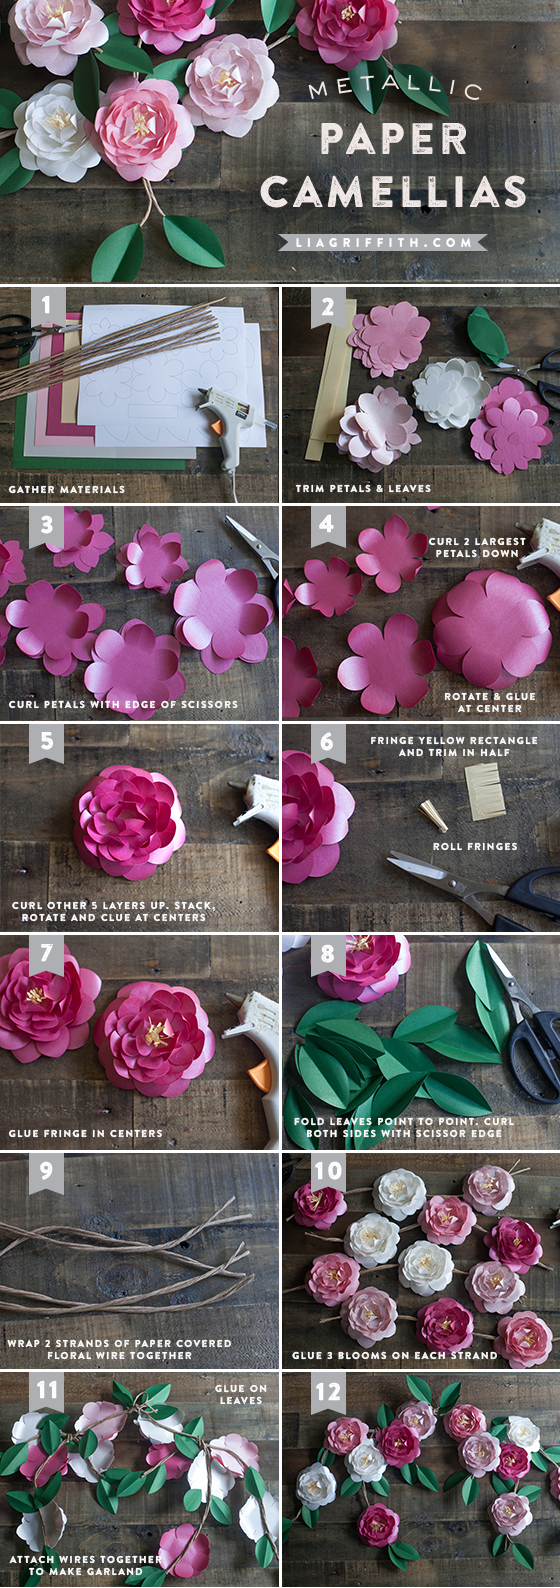 Diy metallic paper camellias diy paper camellias flower tutorial camelliabutton mightylinksfo